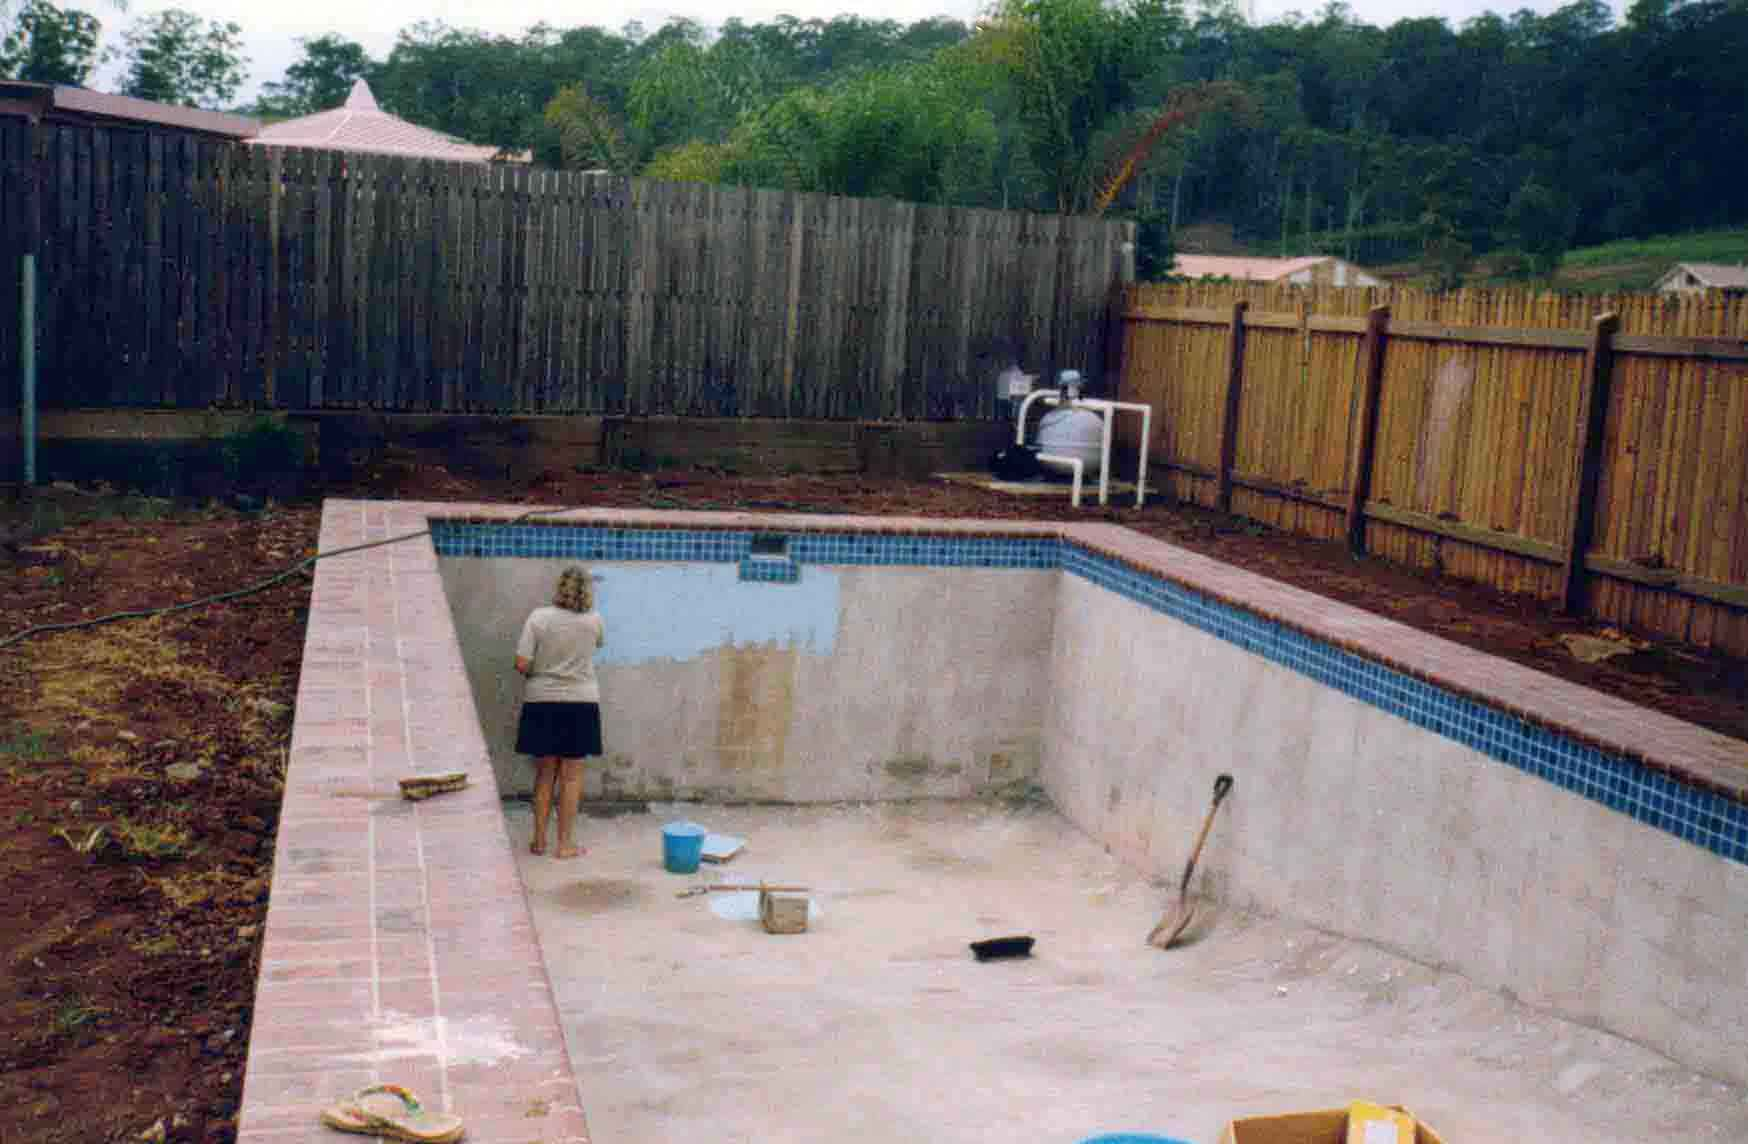 How To Build Your Own Pool Kevin Moran Bricklaying Havuz